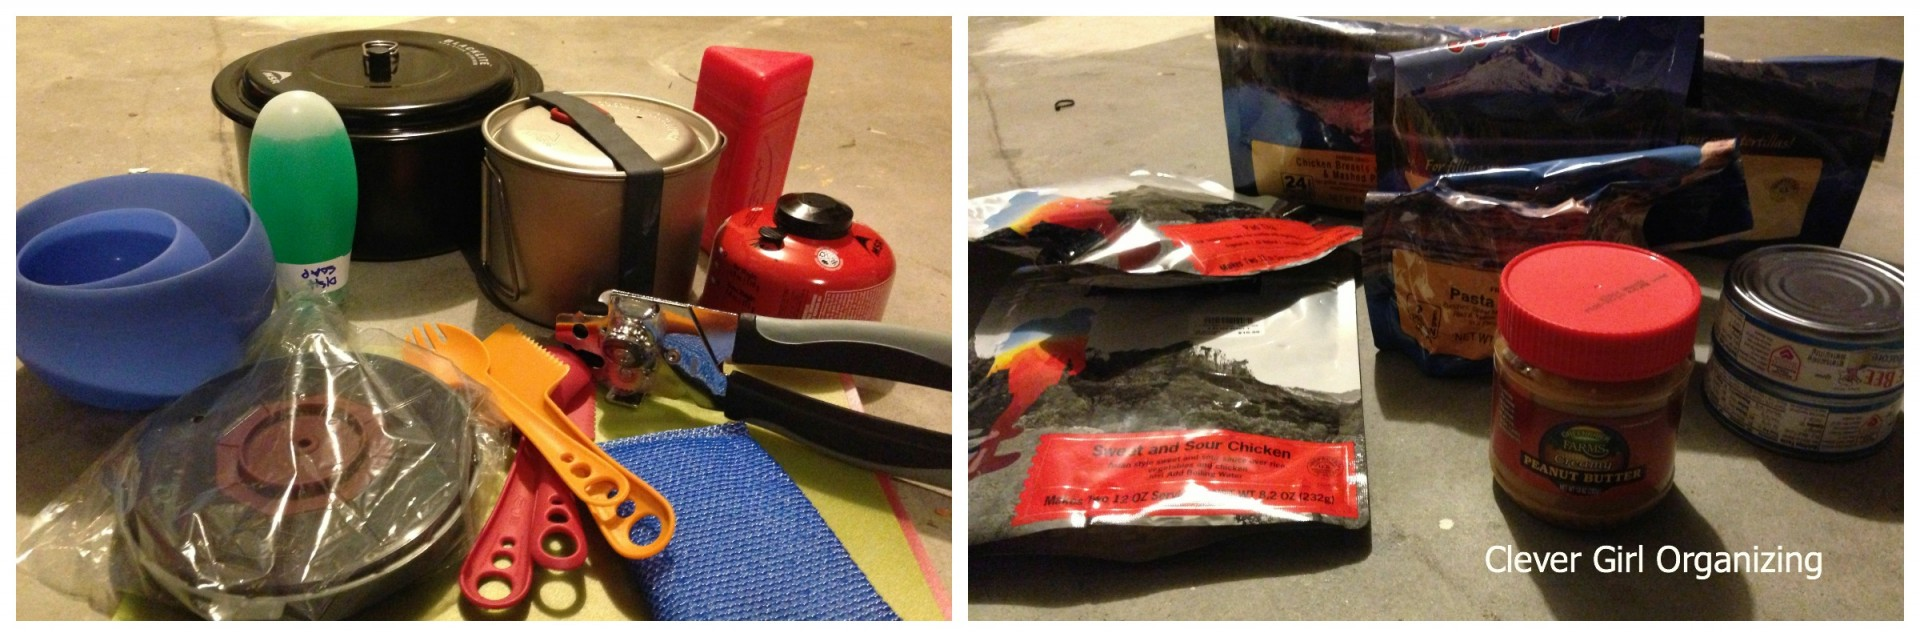 Camp Stove and Fuel, Can Opener, Cutting Surface, Cup/Bowl, Utensils,  Peanut Butter, Tuna, Rehydratable Meals.